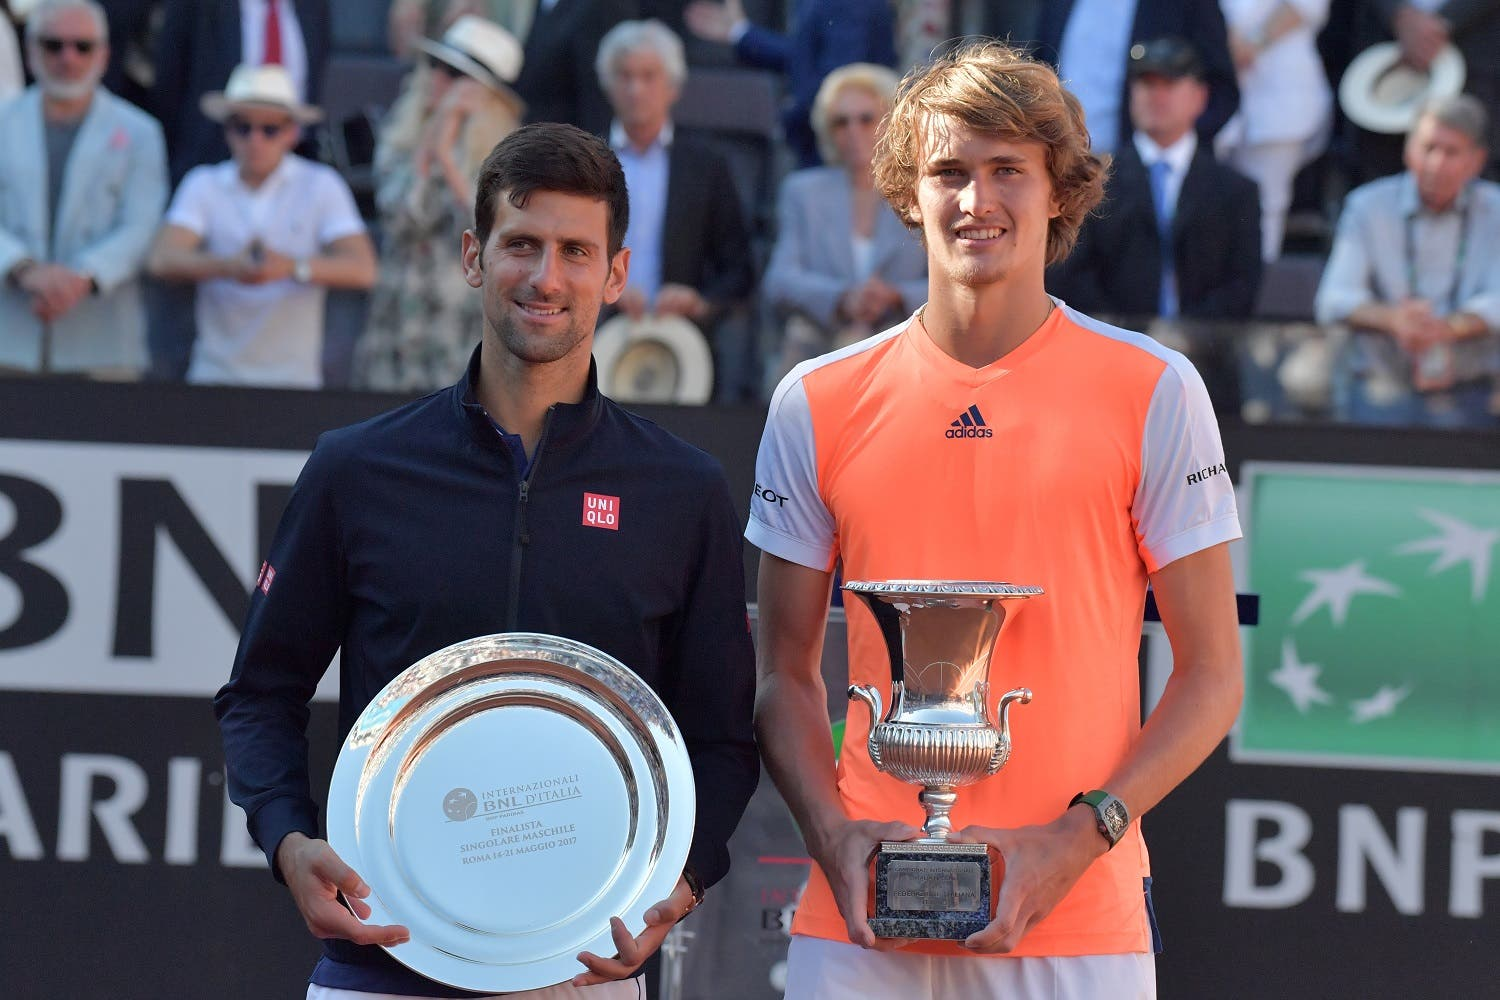 Alexander Zverev of Germany (R) poses with the trophy after winning the ATP Tennis Open final against Novak Djokovic (L) of Serbia on May 21, 2017, at the Foro Italico in Rome. Germany's Alexander Zverev stunned four-time Rome champion Novak Djokovic 6-4, 6-3 to win his first Masters title on Sunday, confirming his status as a French Open dangerman. (AFP)